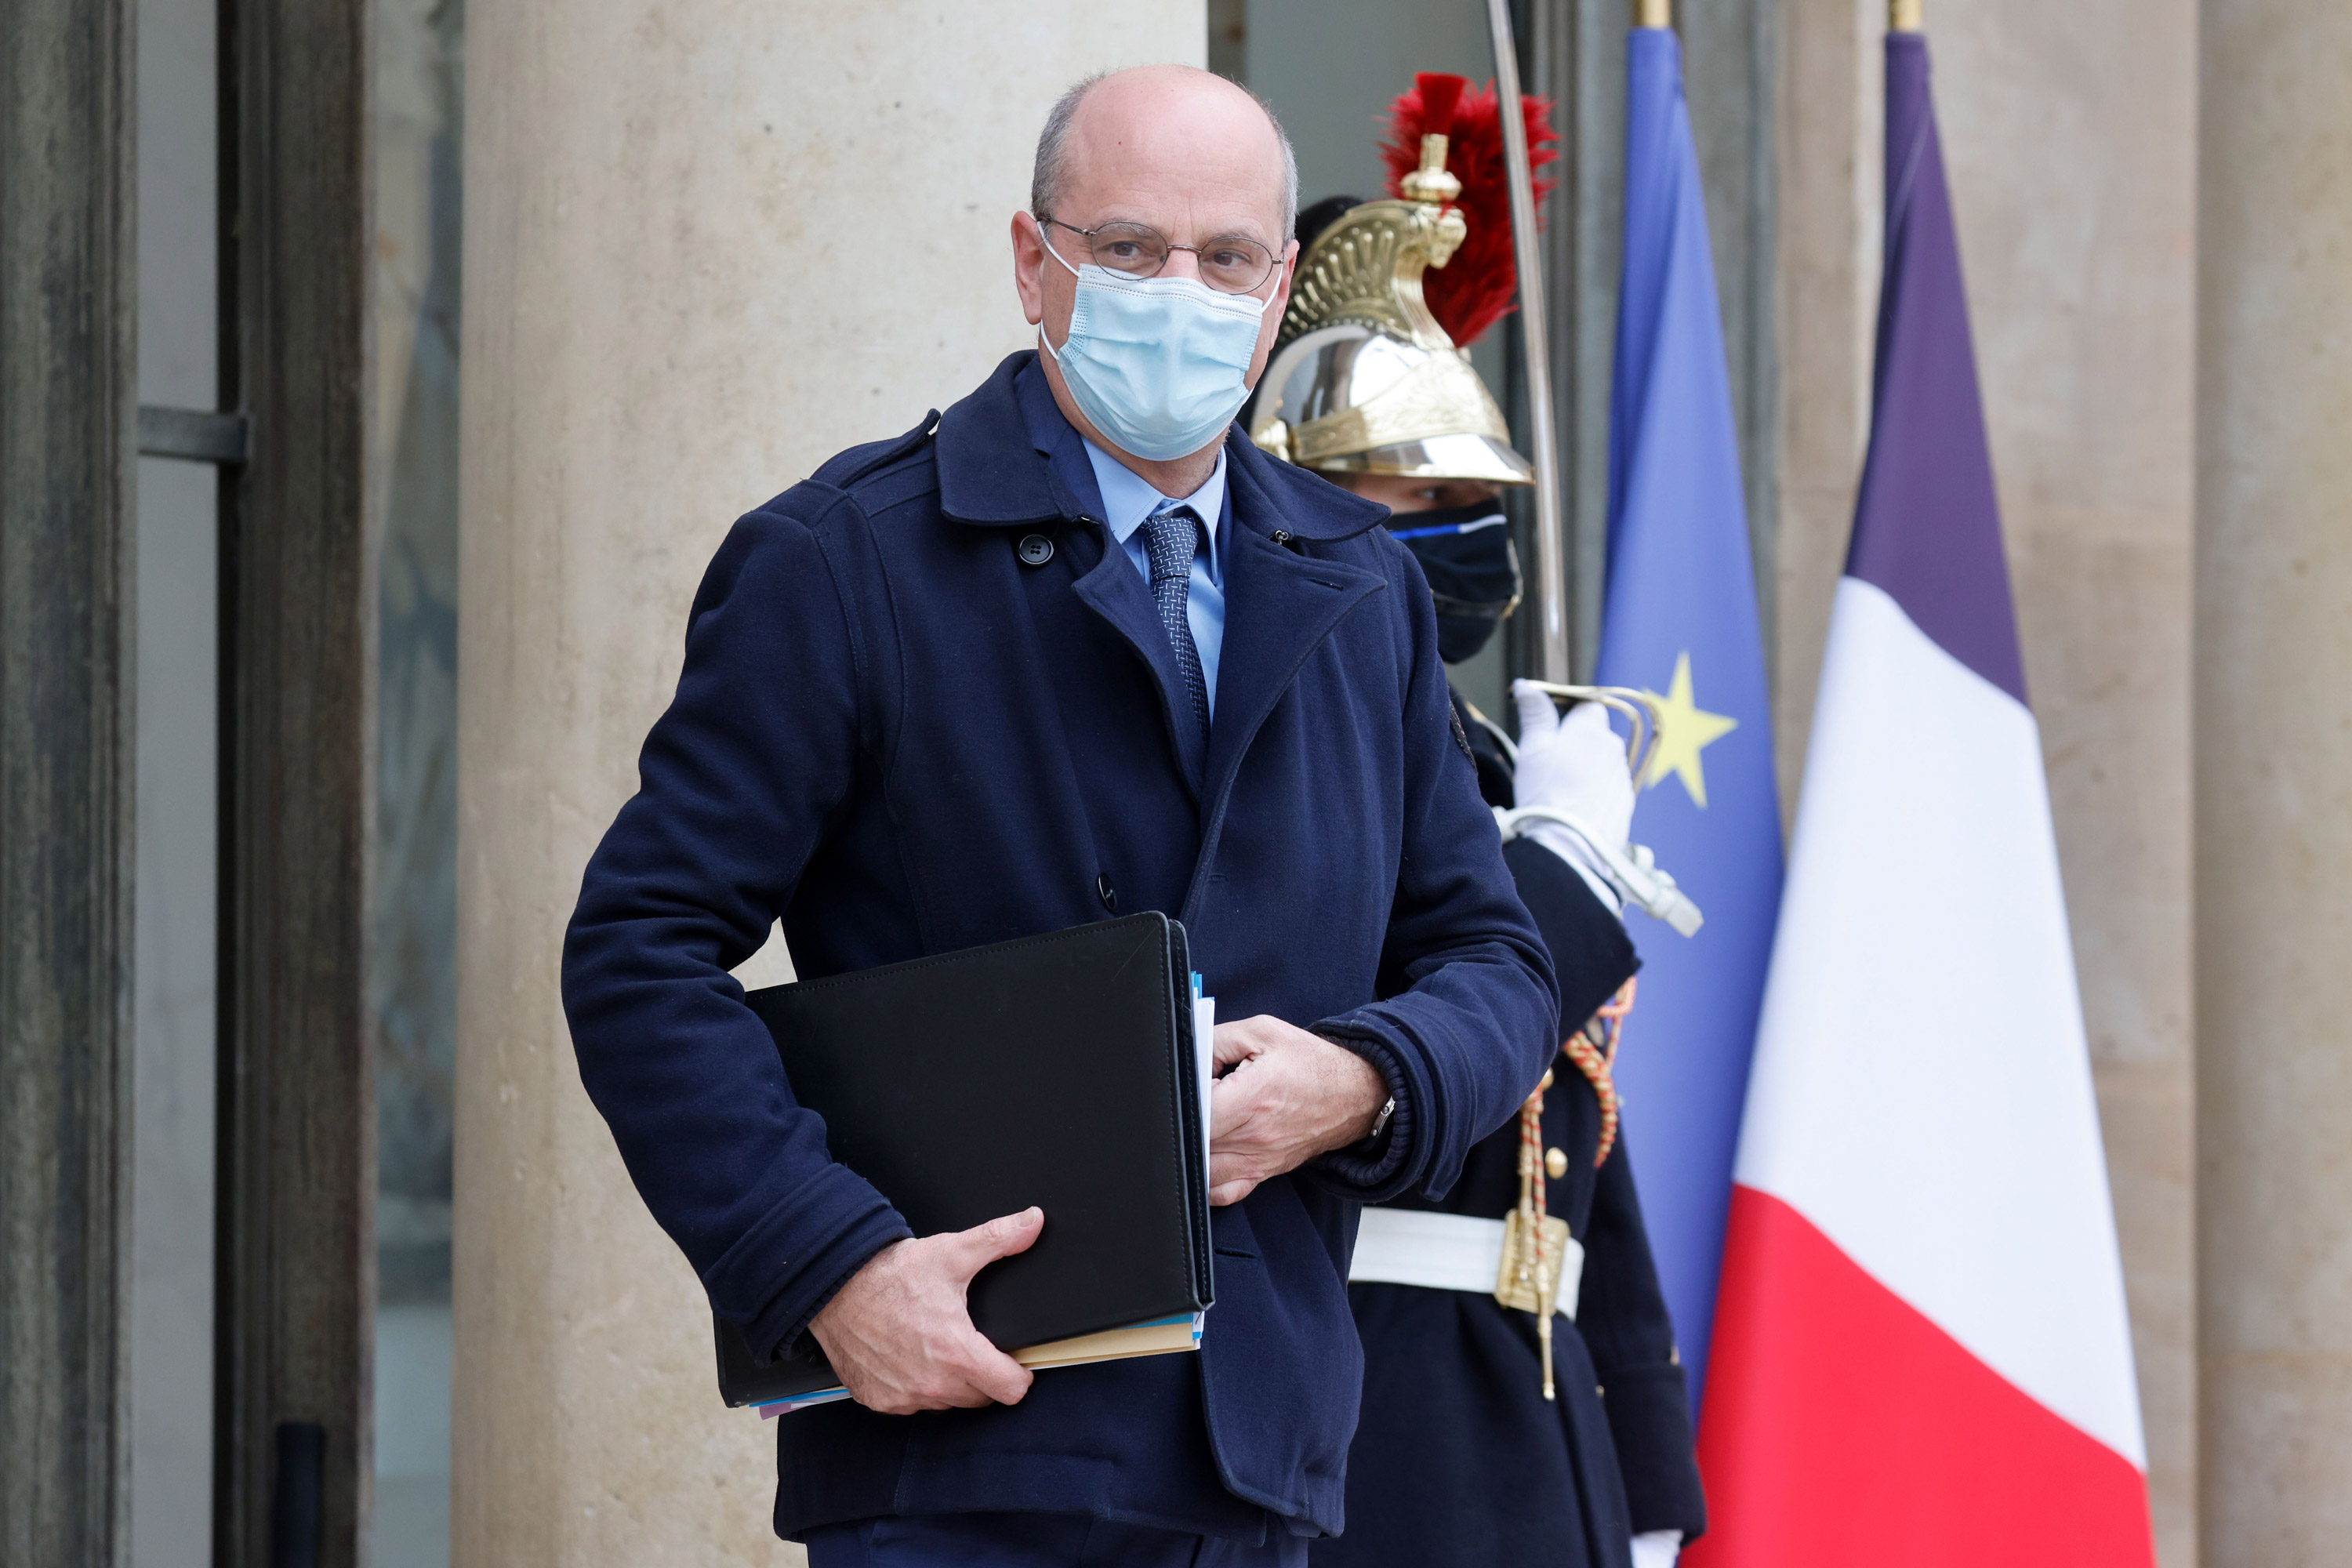 France's Education Minister Jean-Michel Blanquer leaves the Elysee Presidential Palace on February 3 in Paris.